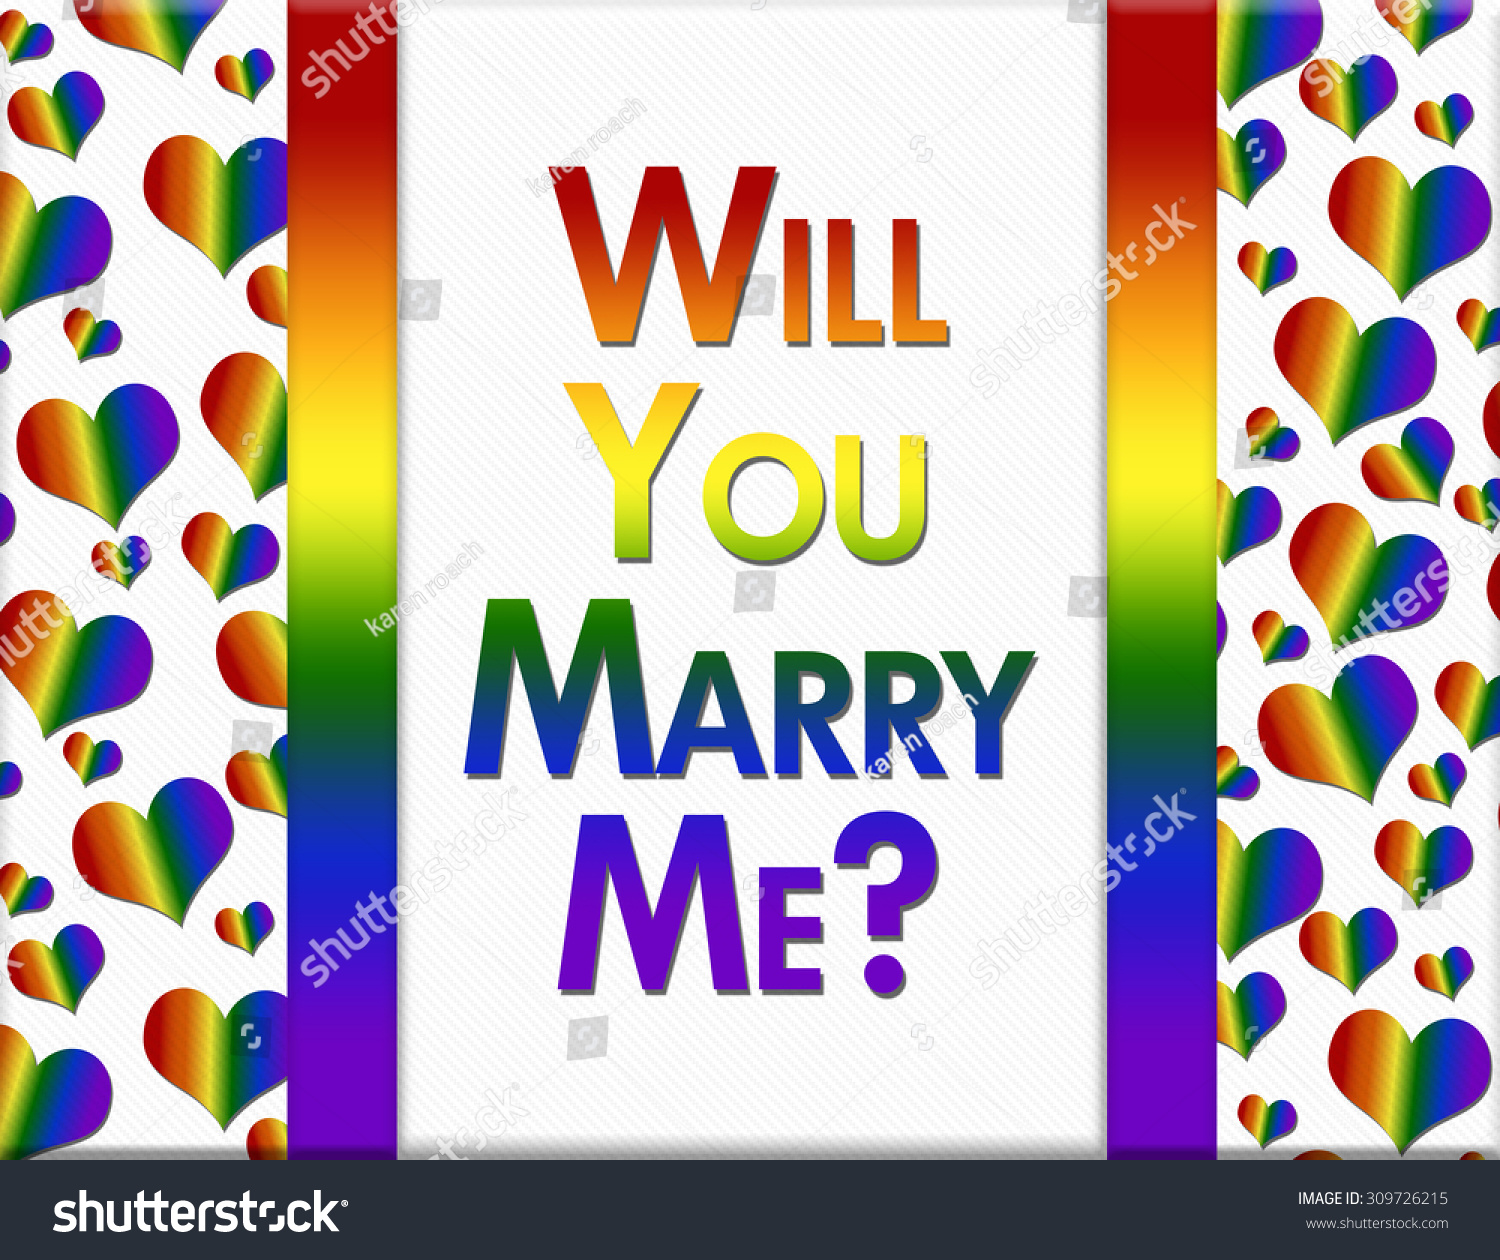 Royalty Free Stock Illustration Of Lgbt Will You Marry Me Message